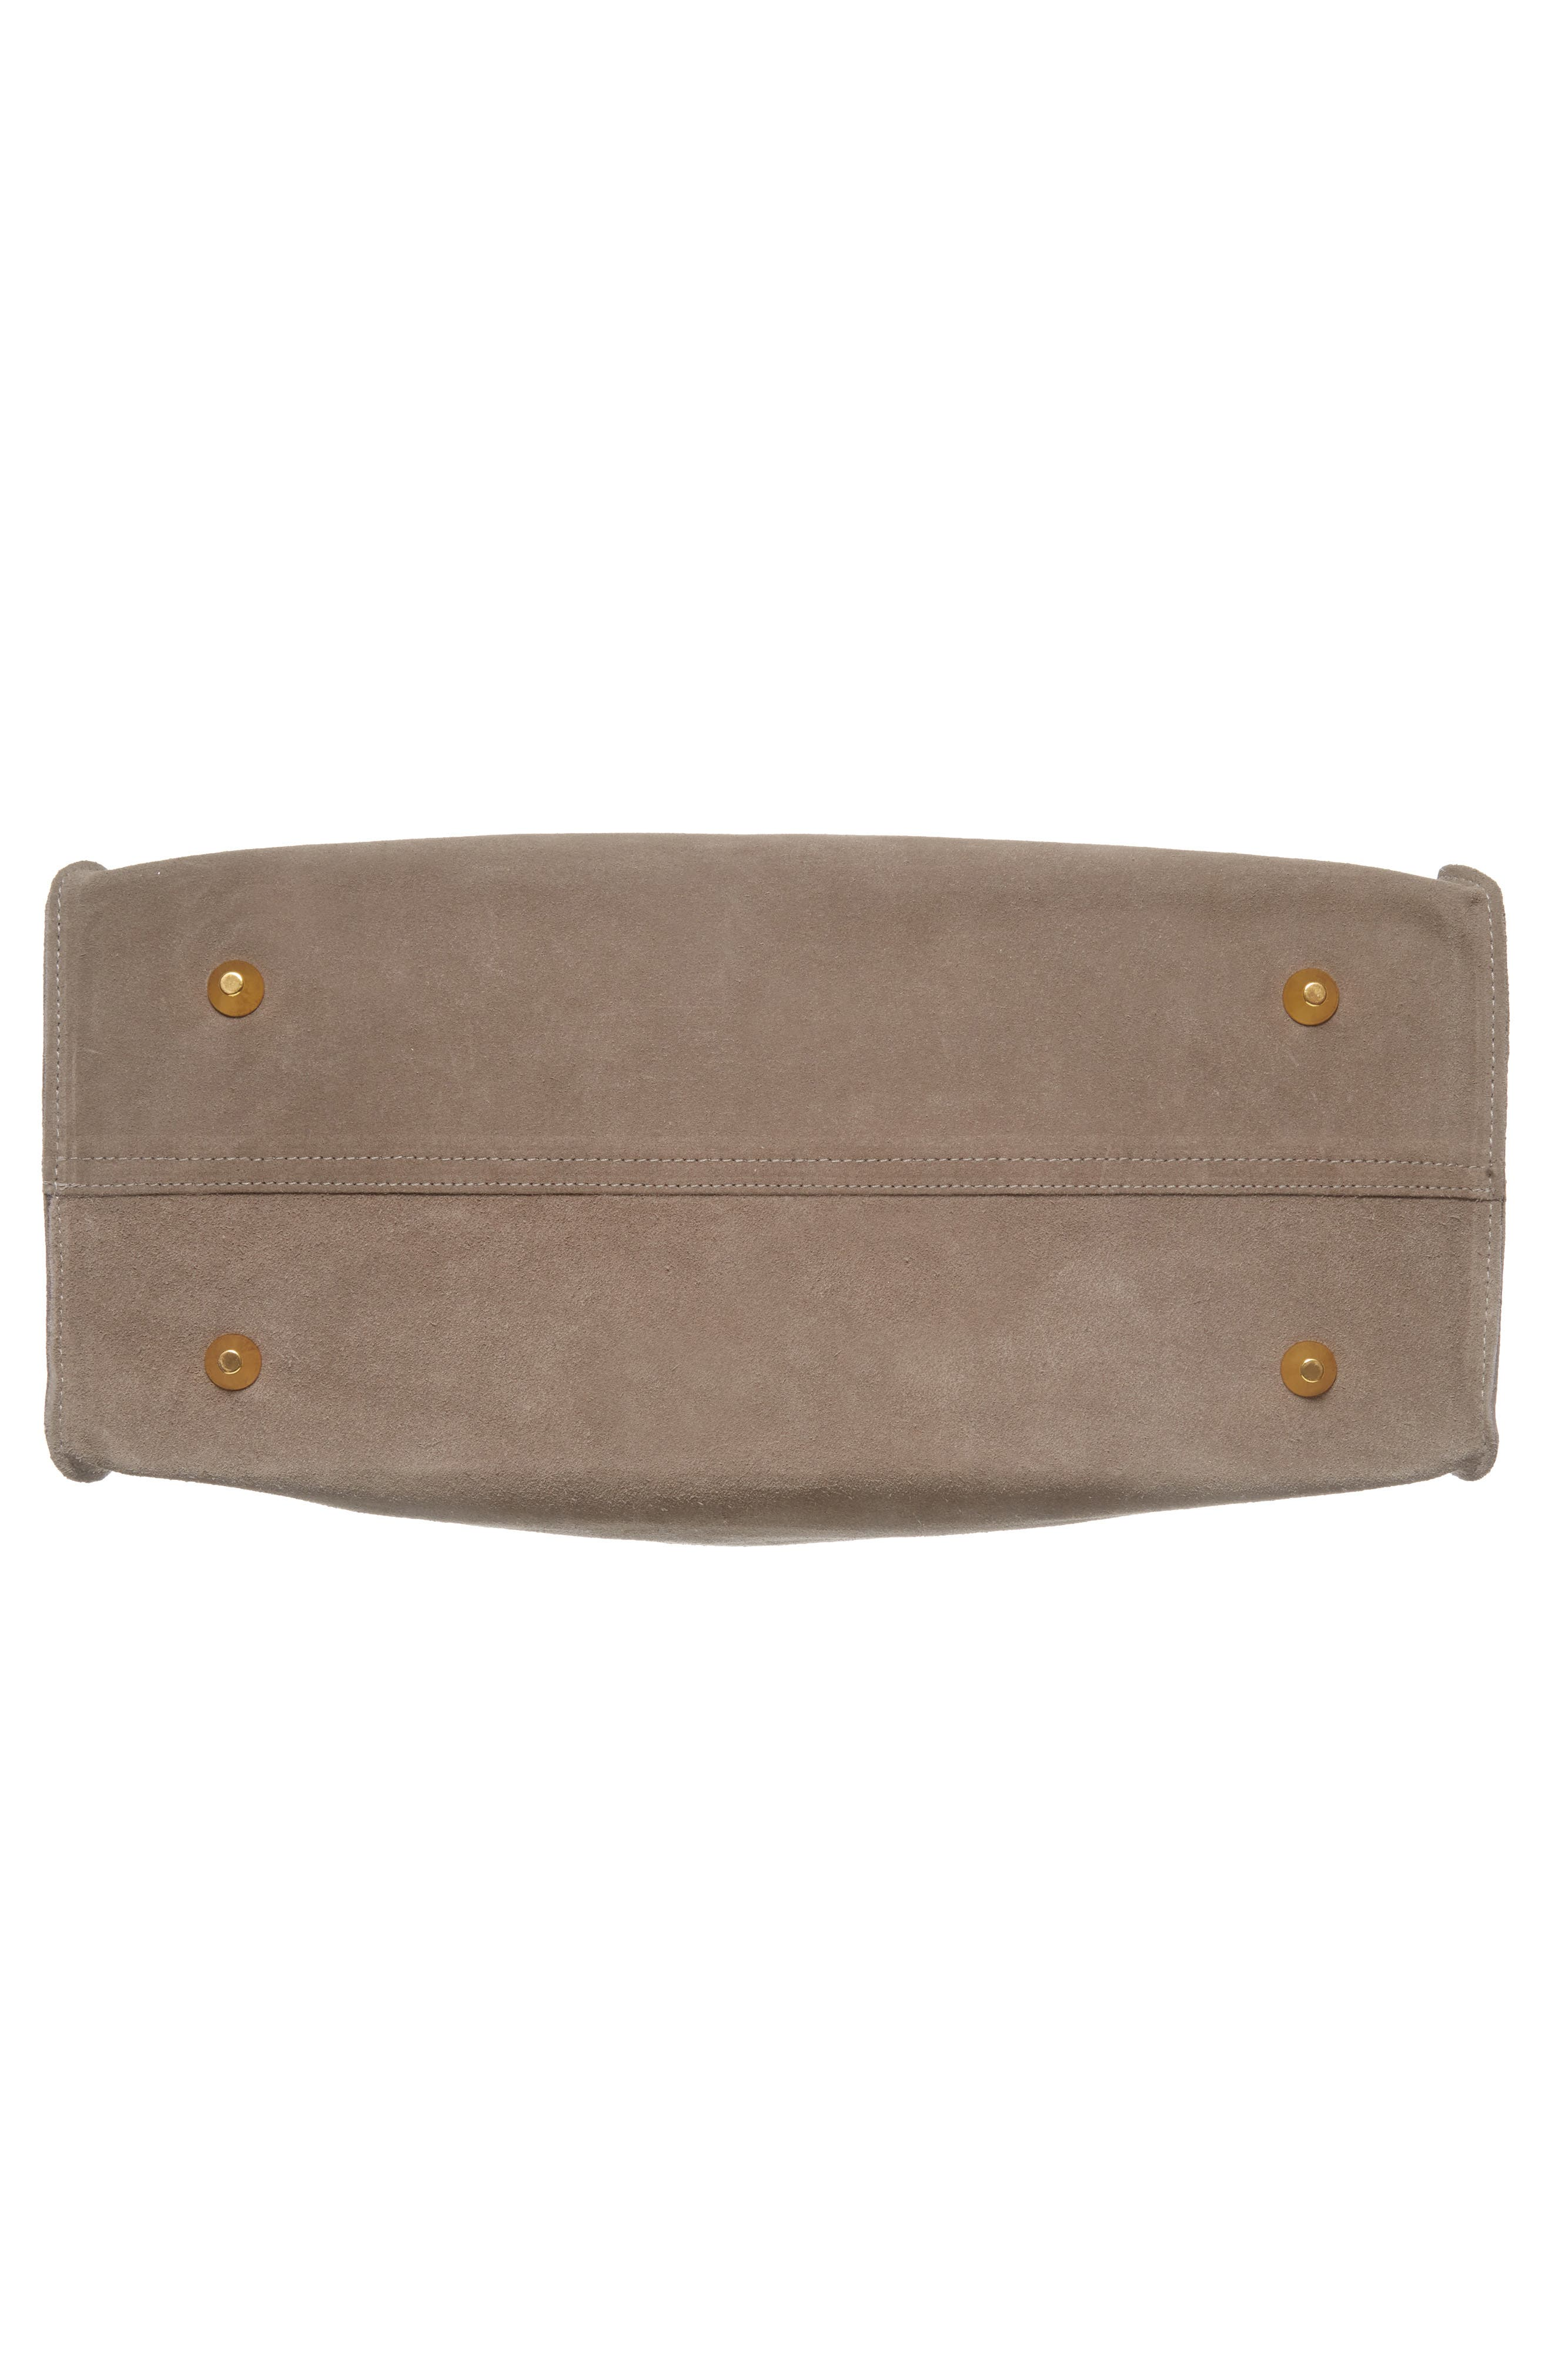 Simple Suede Tote,                             Alternate thumbnail 7, color,                             200